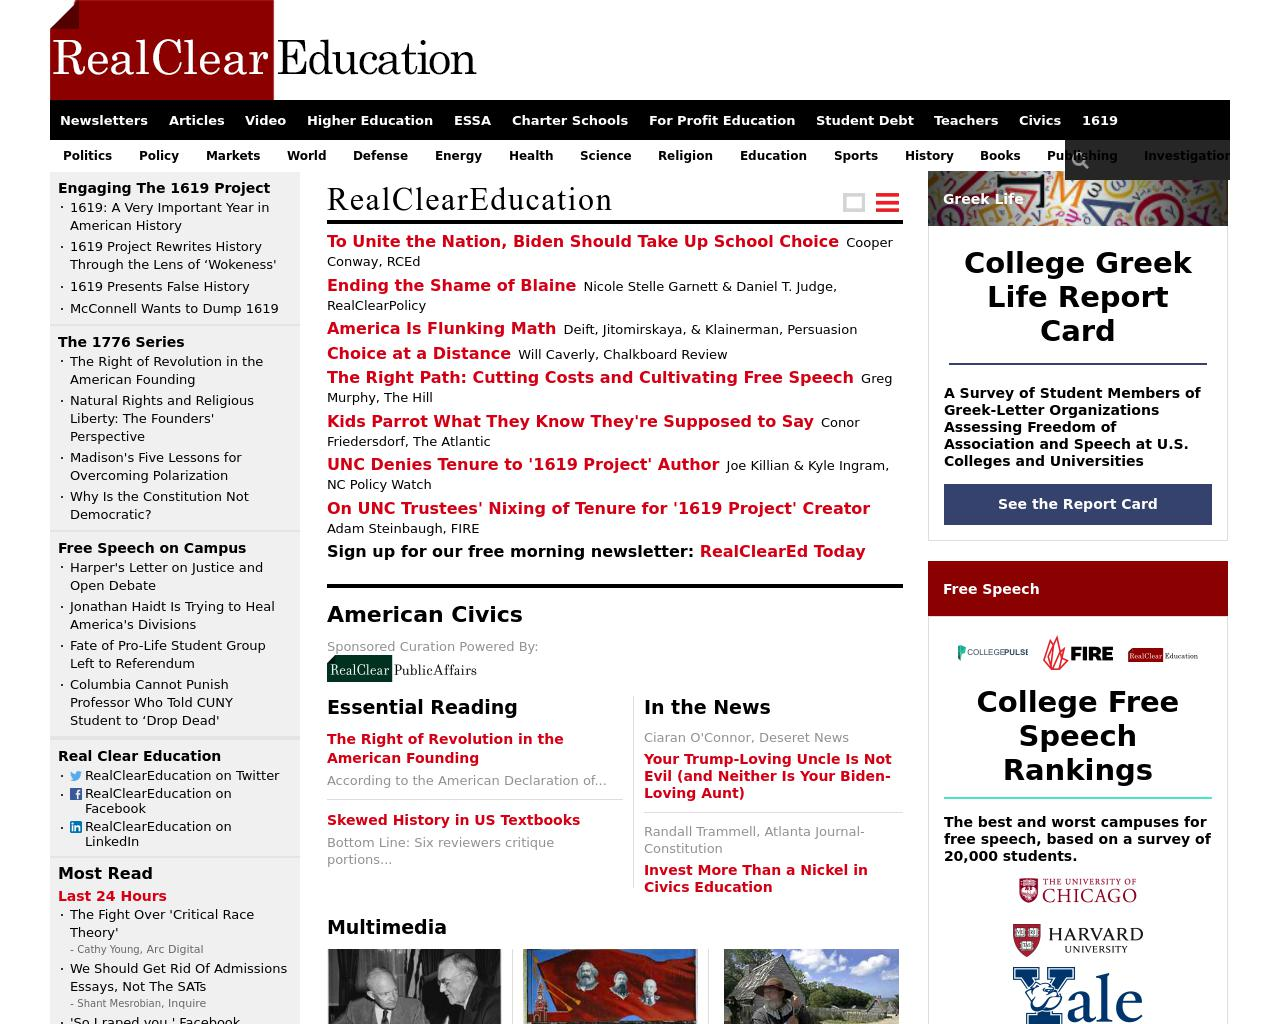 realcleareducation.com